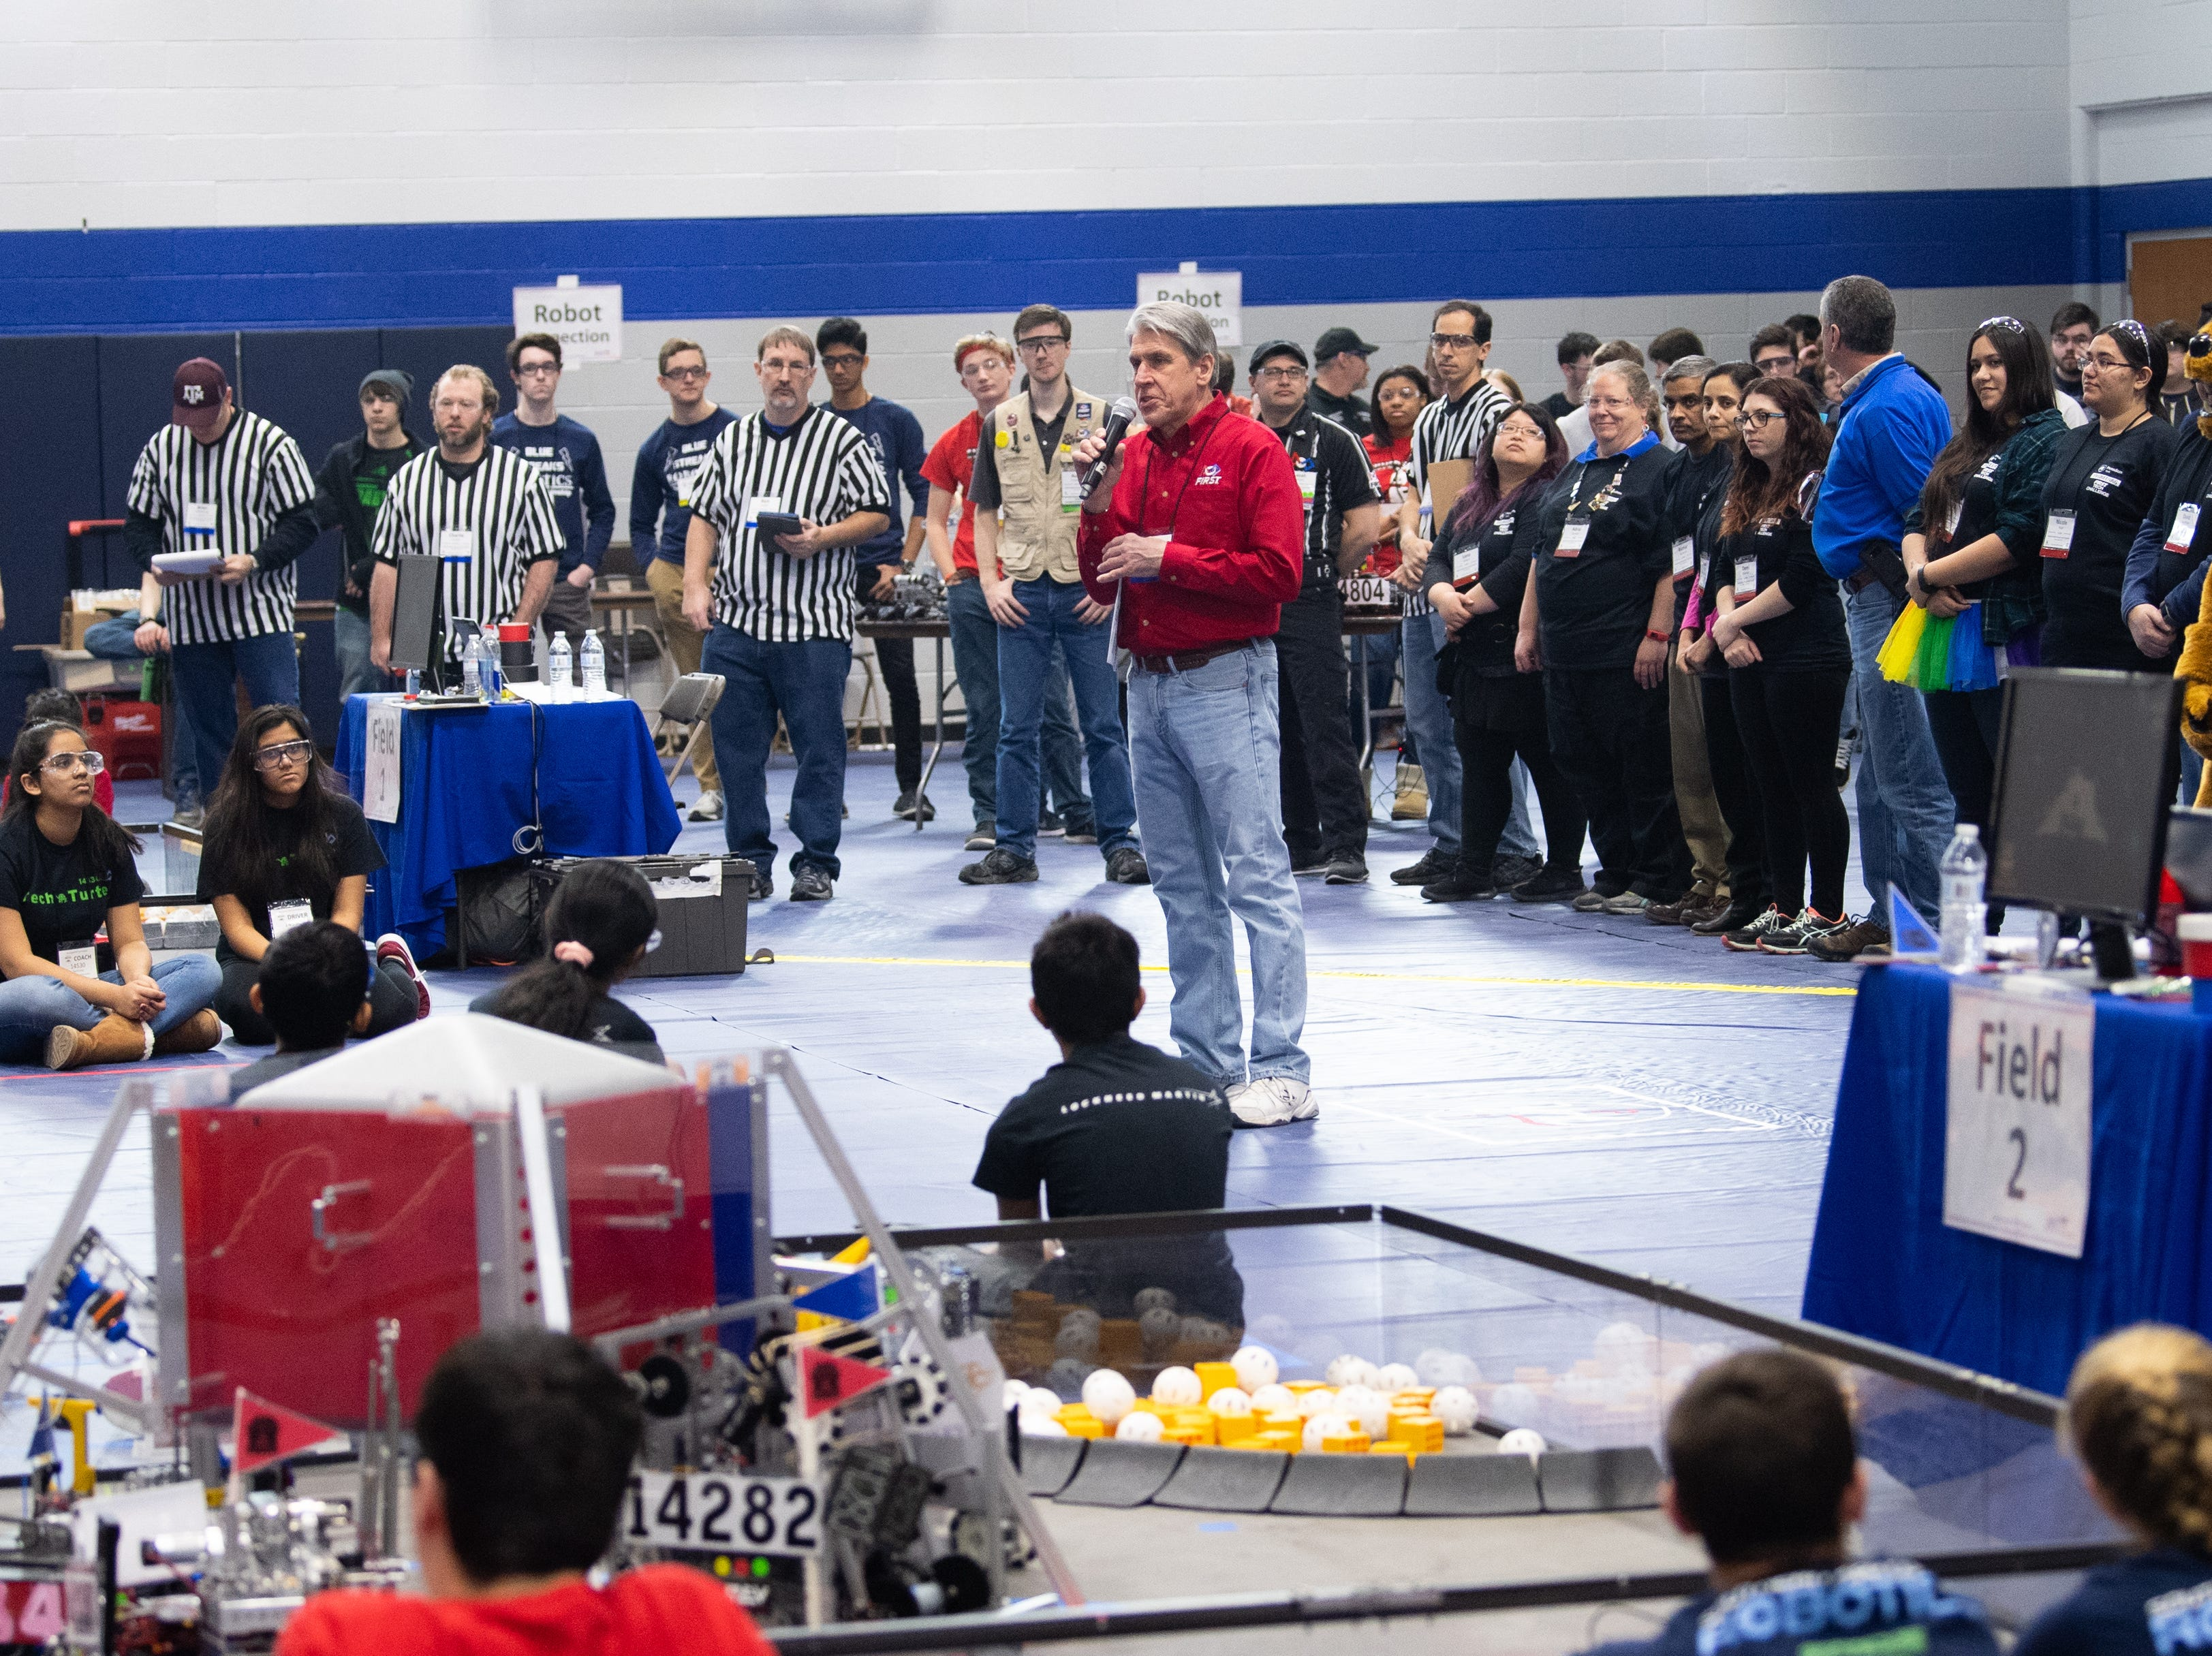 Penn State York hosted the South Central Pennsylvania Qualifier of the First Tech Challenge robotics competition, February 2, 2019.